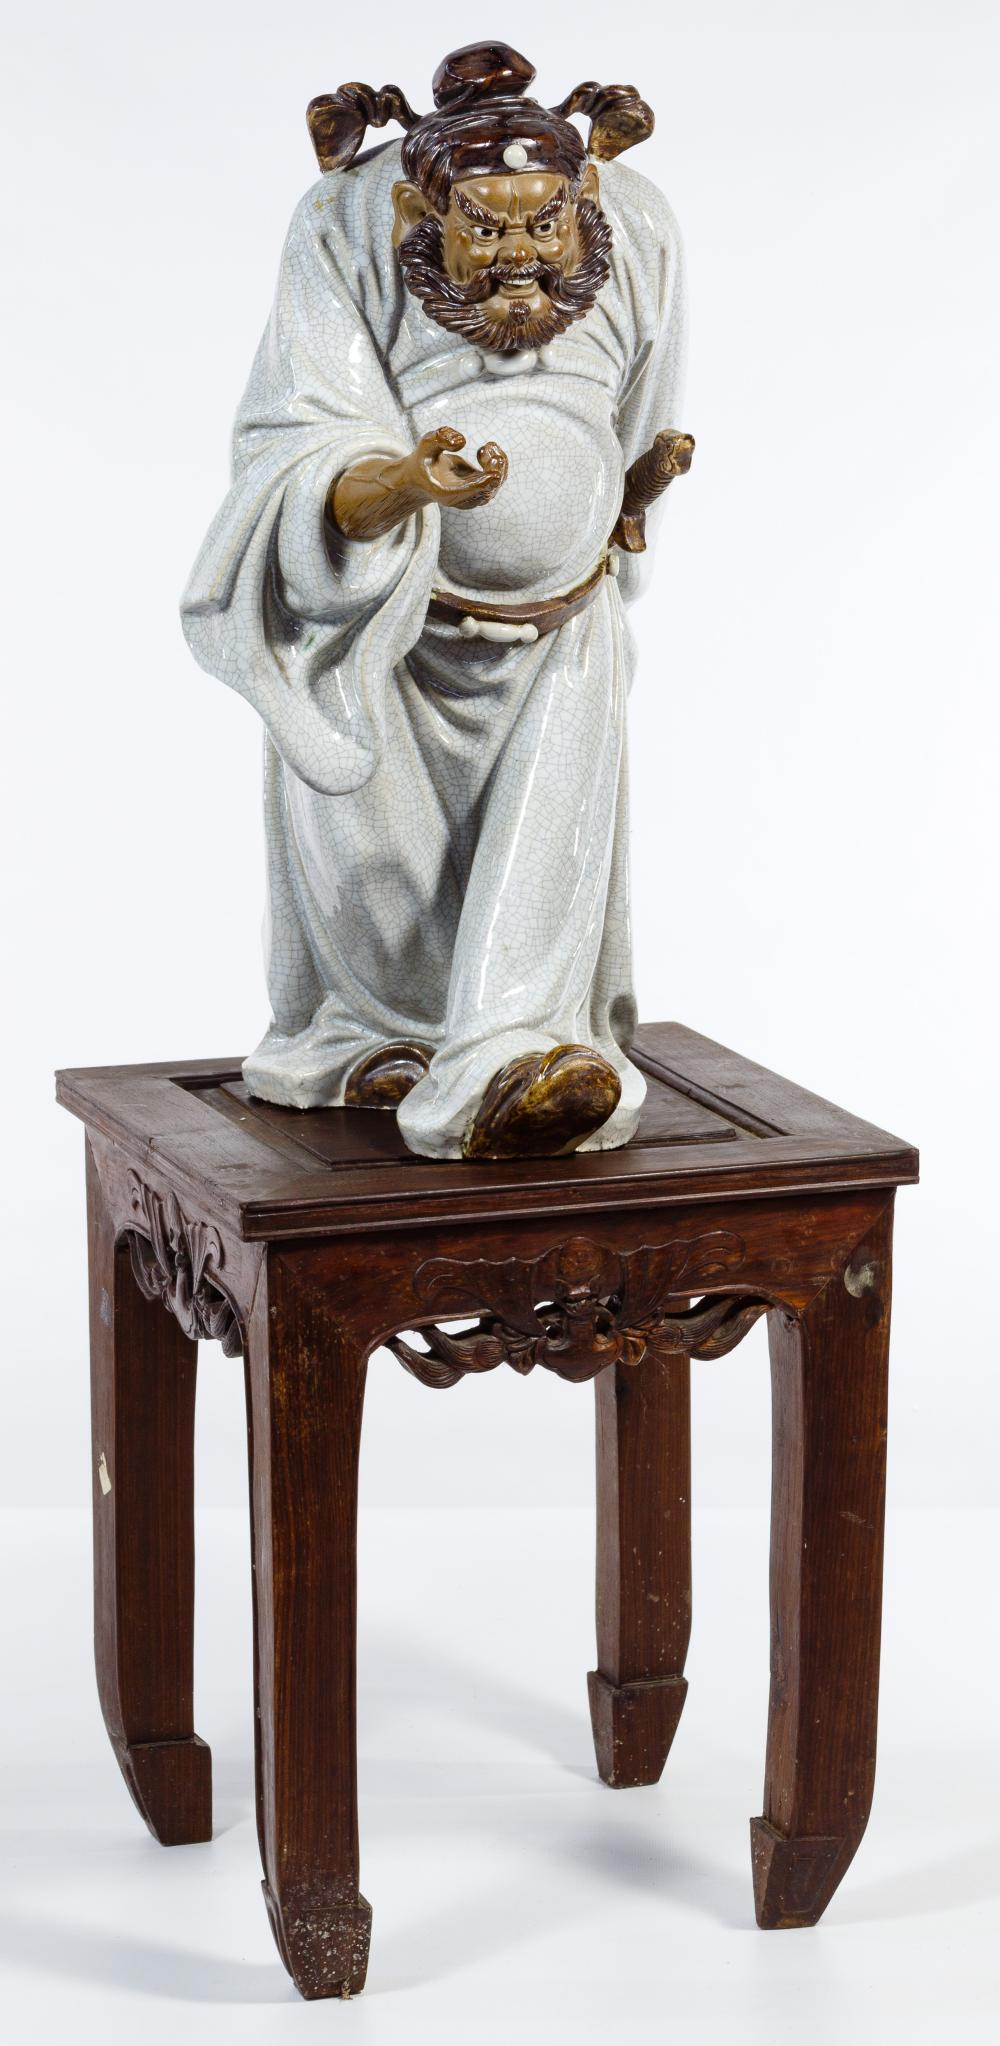 Asian Glazed Earthenware Figure and Stand